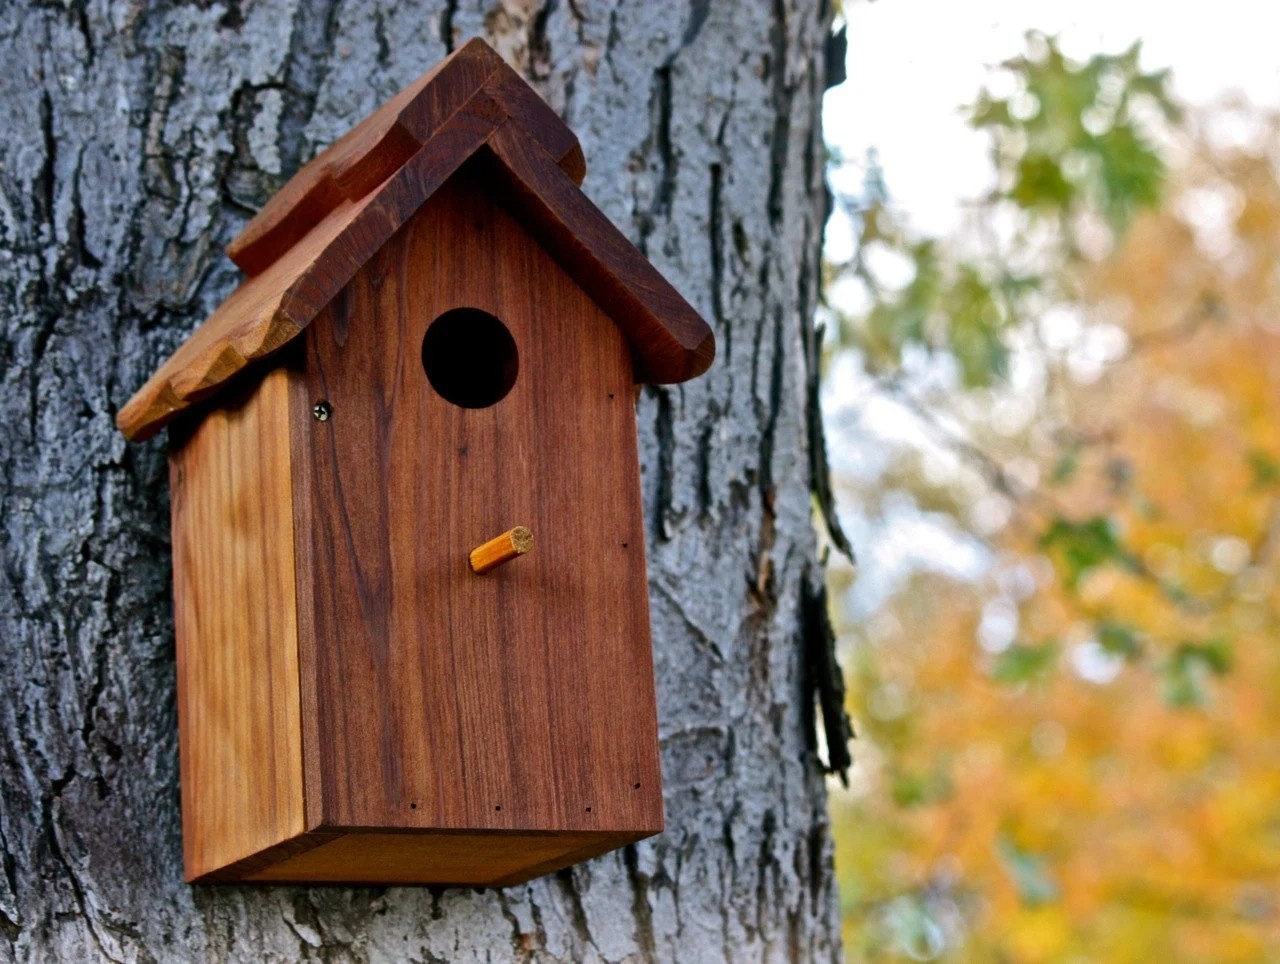 Wood Birdhouse / Nesting Box - Western Red Cedar